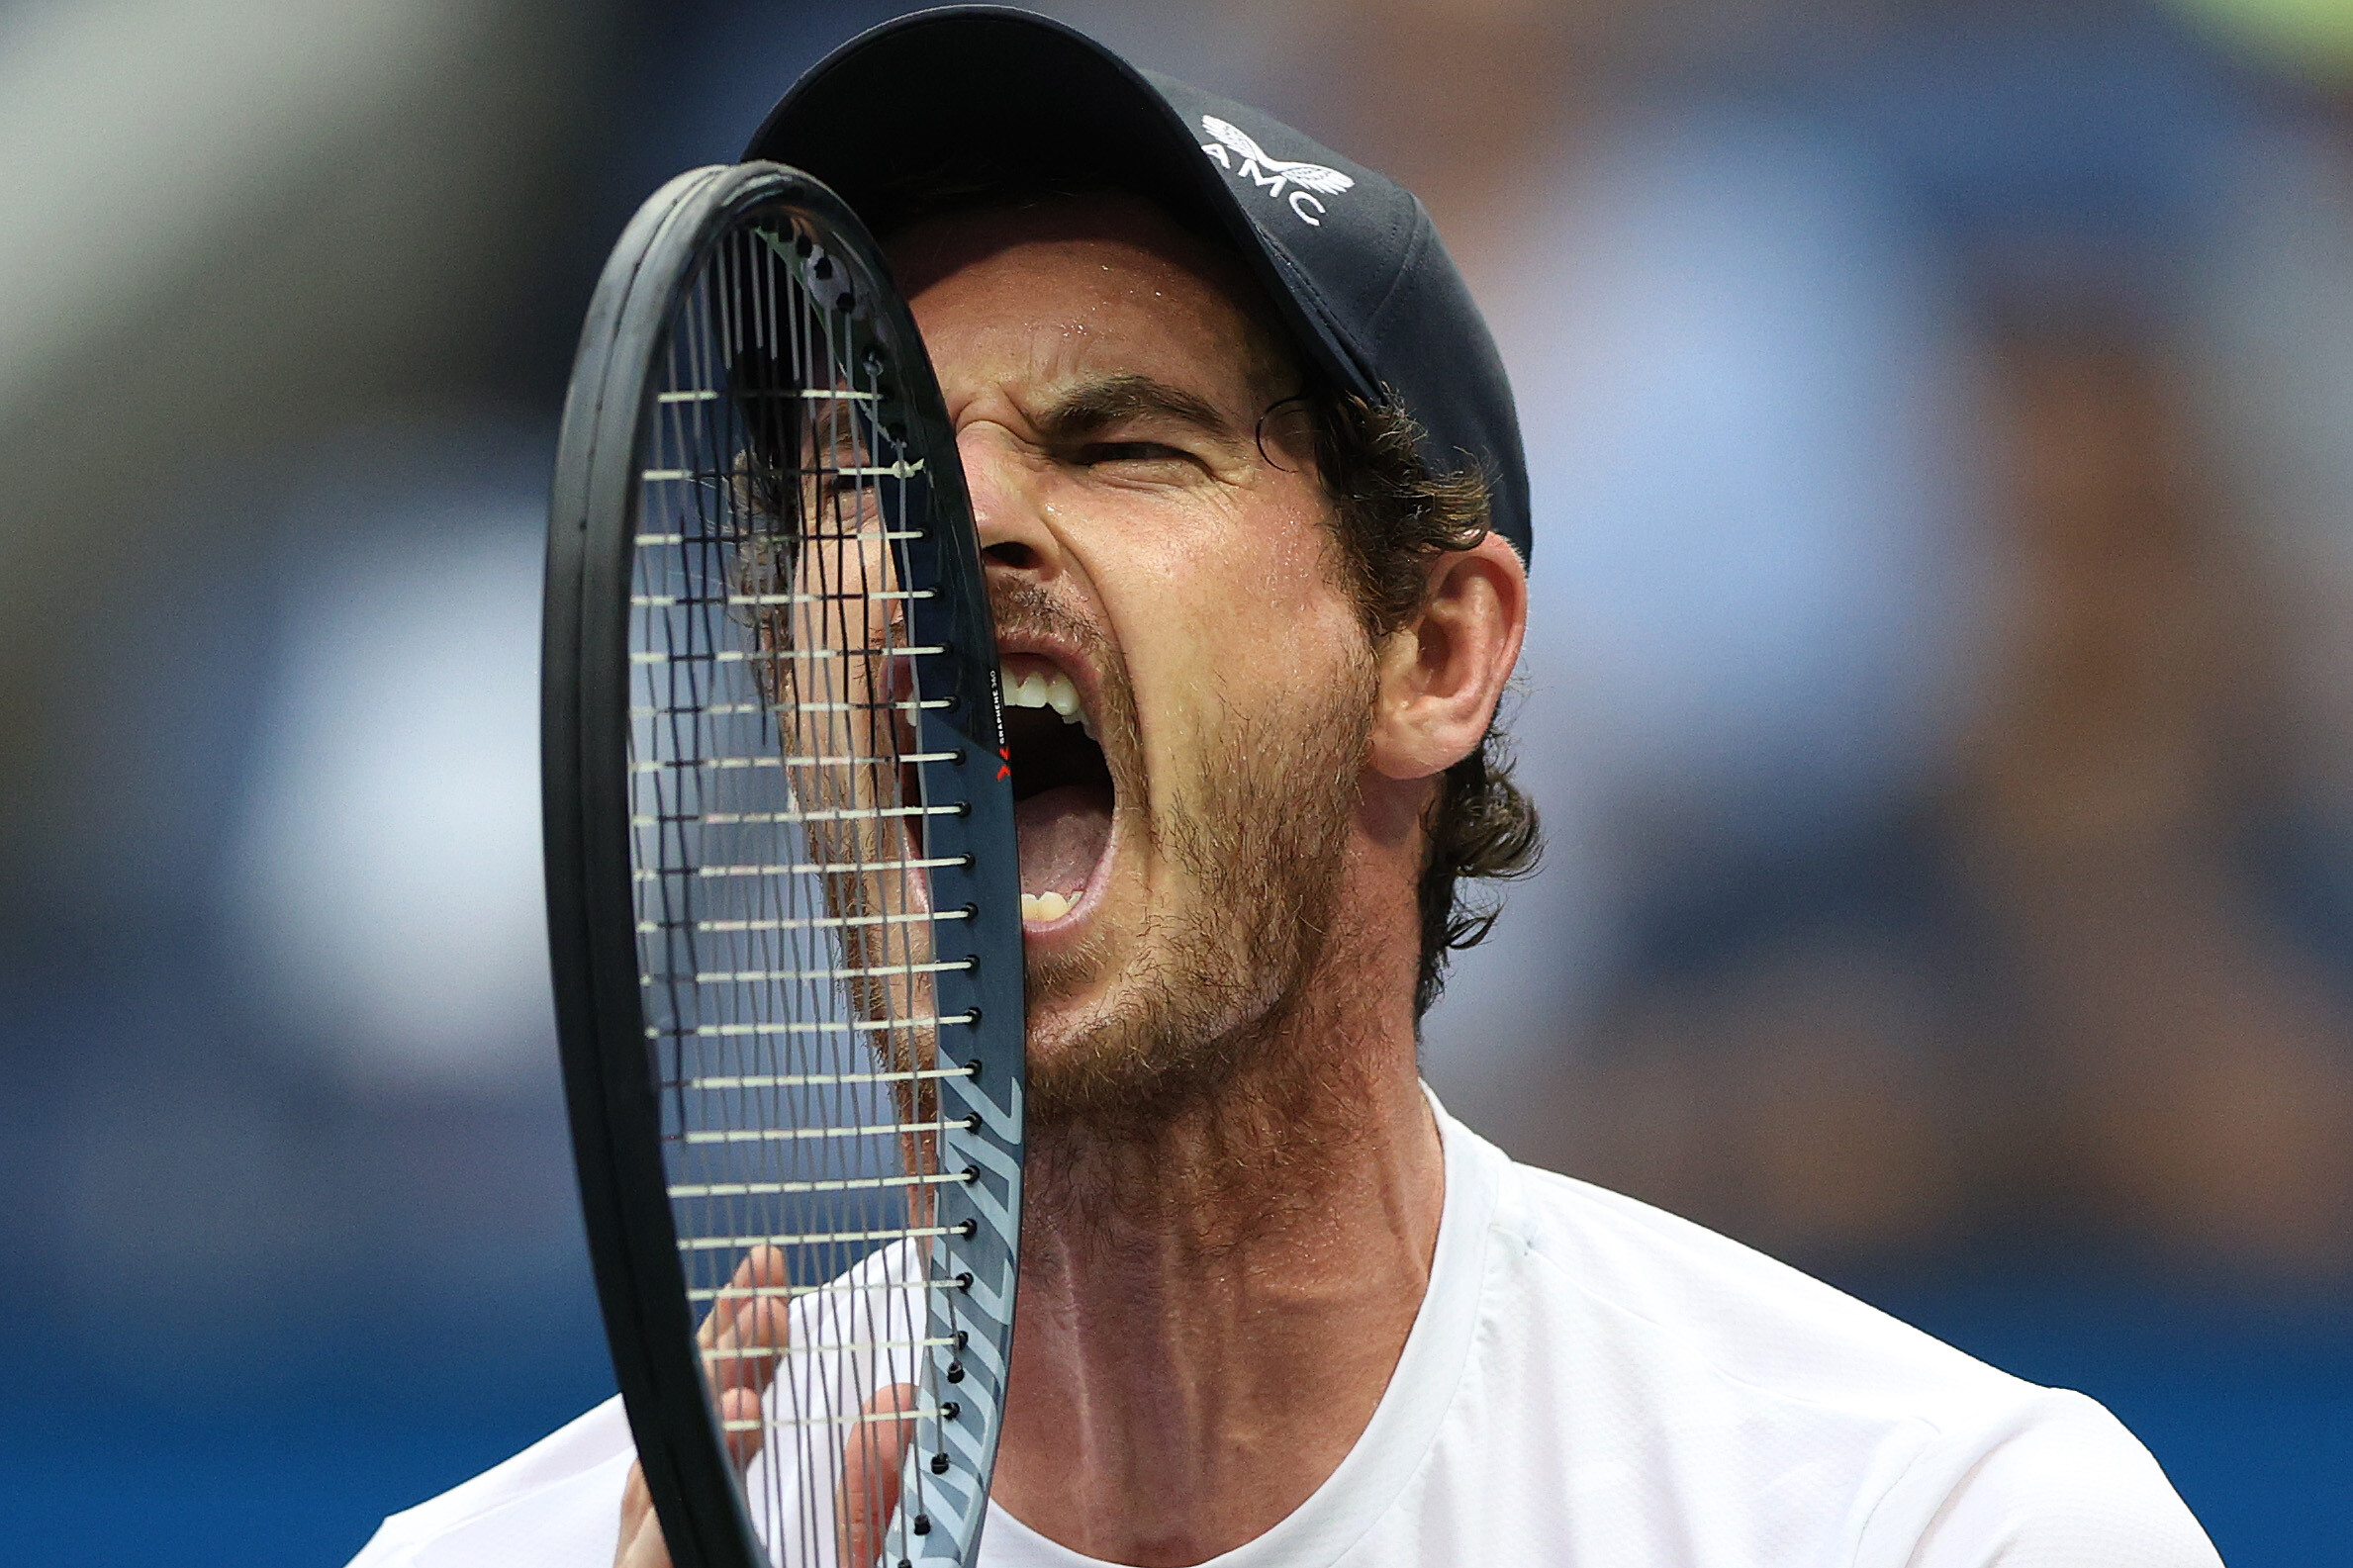 Andy Murray is back in the 'good books' after finding lost wedding ring